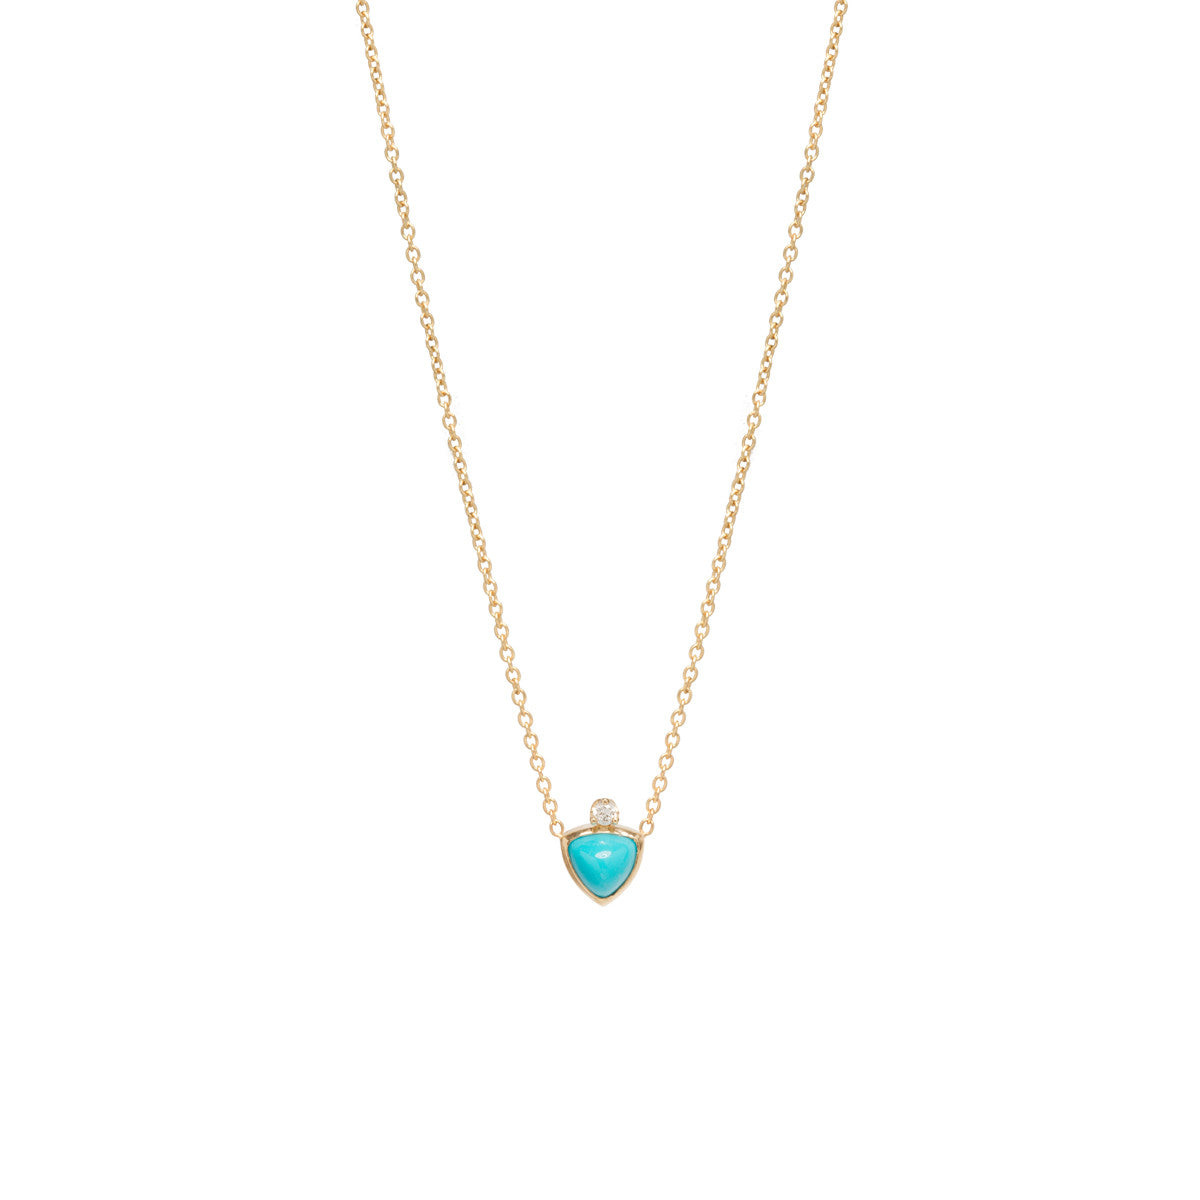 14k trillion turquoise and diamond prong necklace